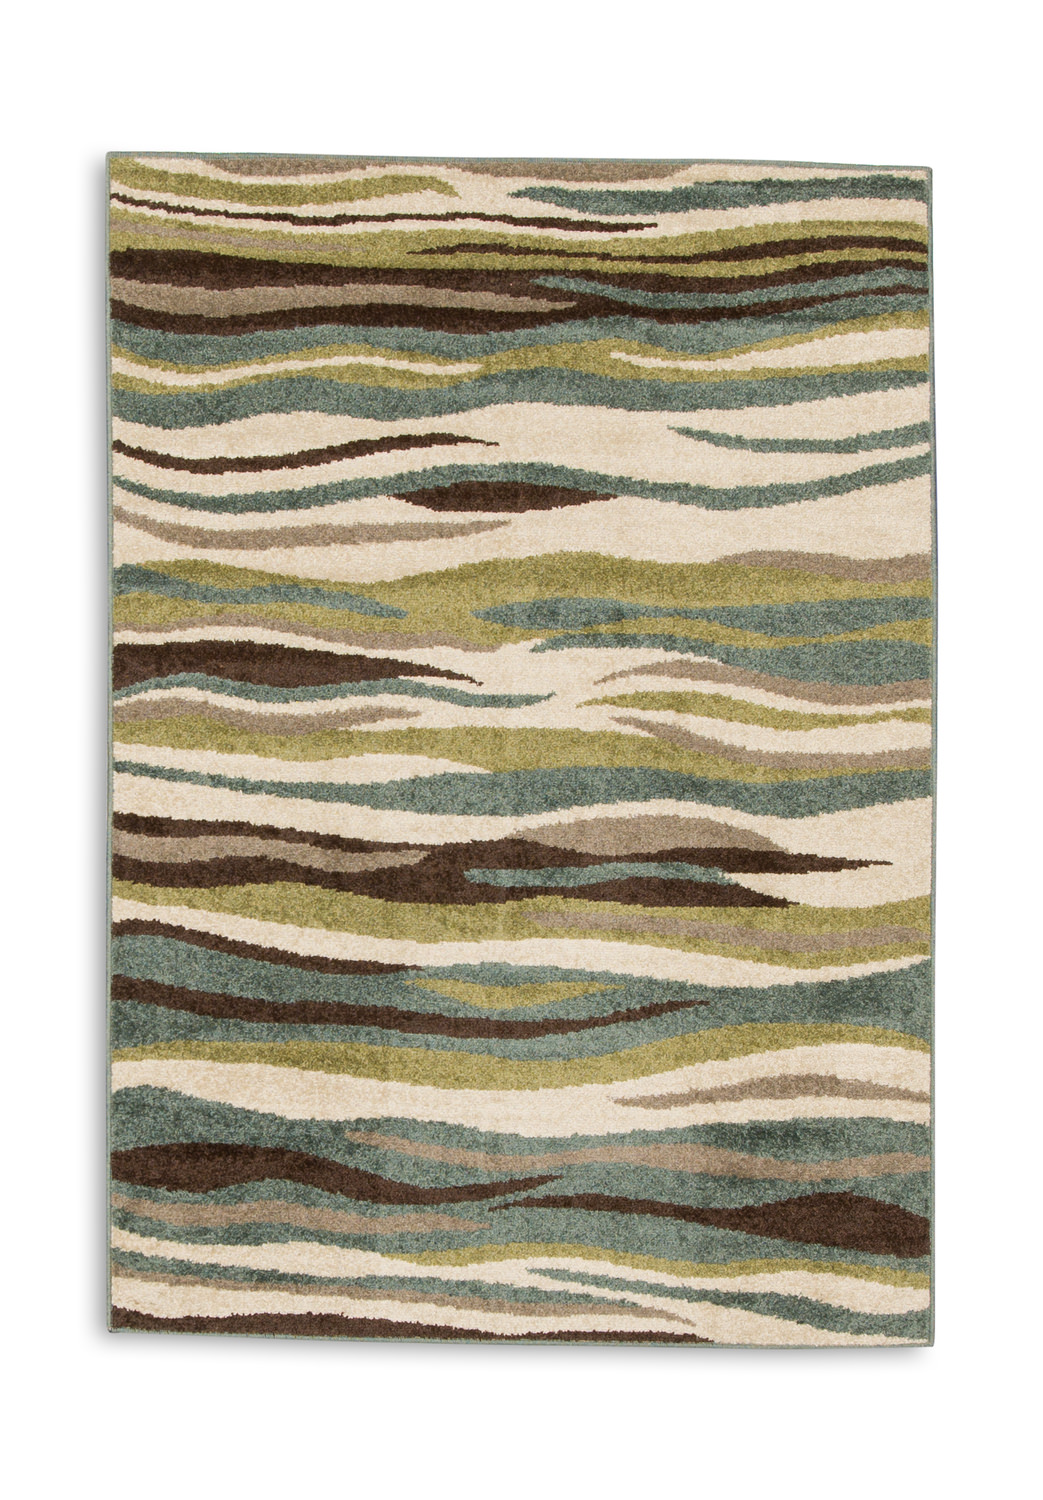 Marcello Assorted Area Rugs By Dalyn Dock86